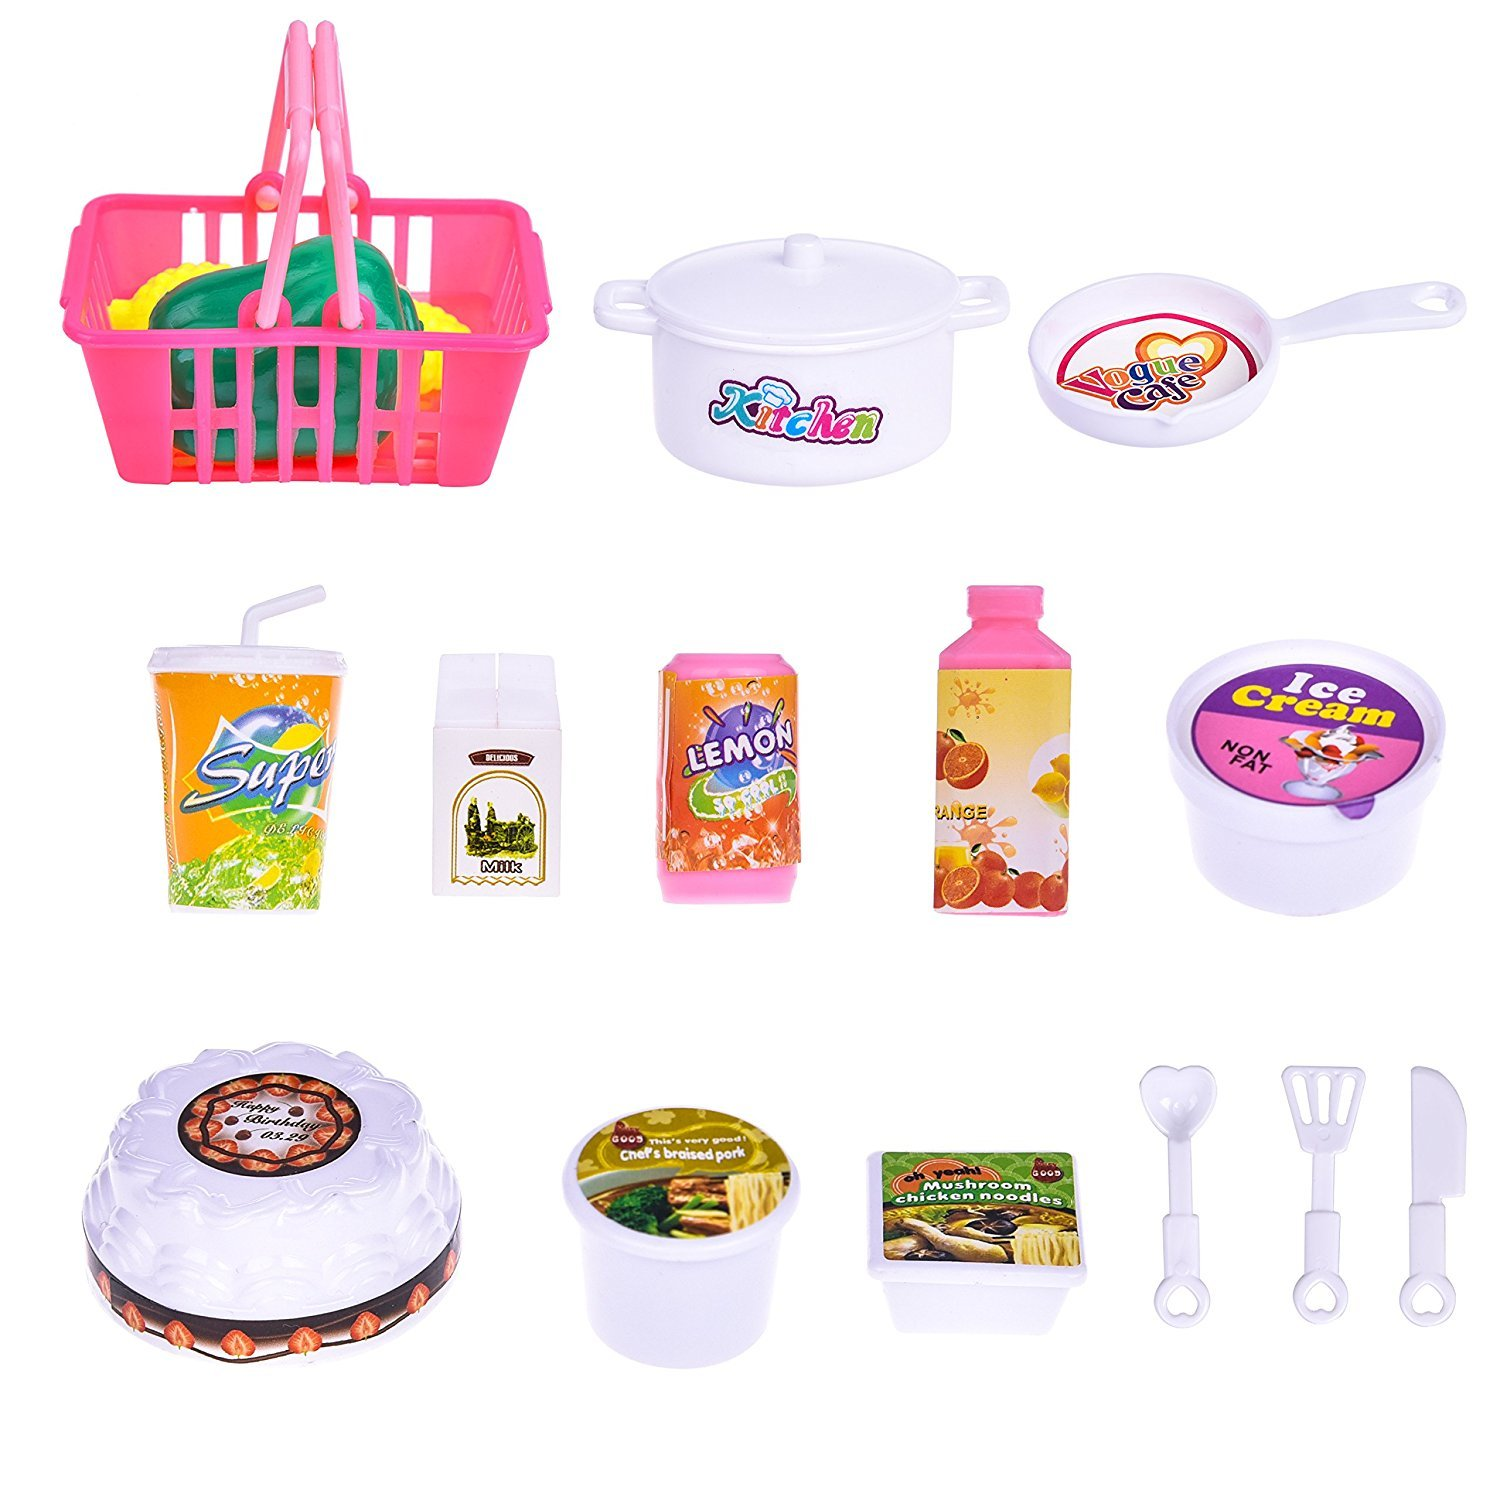 19 PCs Kitchen Appliance Toys with Kitchen, Refrigerator, Pot and Tableware, Pretend Play Set for Kids, Play Kitchen Appliance by FUN LITTLE TOYS (Image #6)